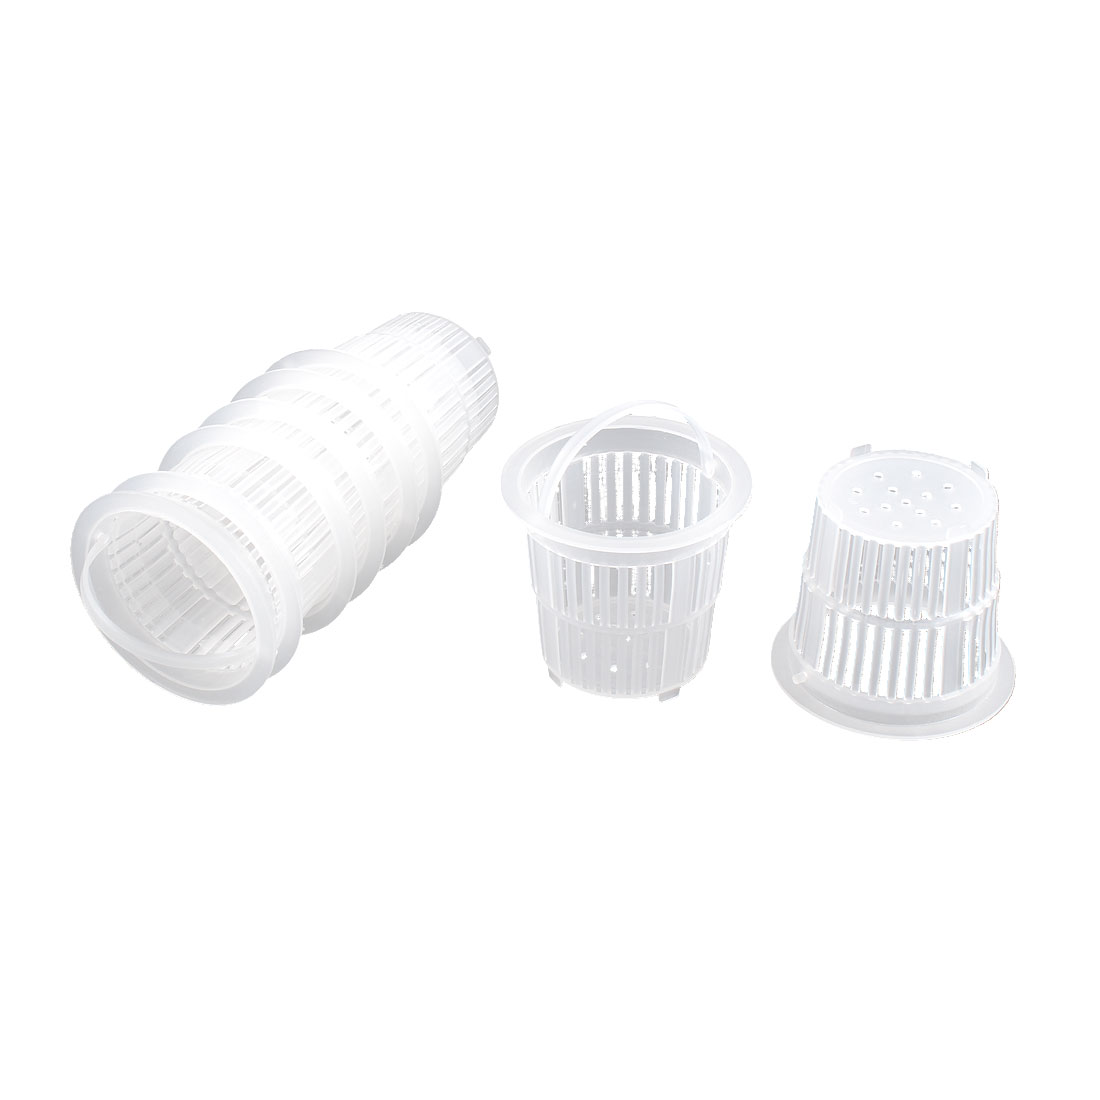 Kitchen Sink Plastic Drainer Strainer Garbage Stopper Filter Basket 8 Pcs